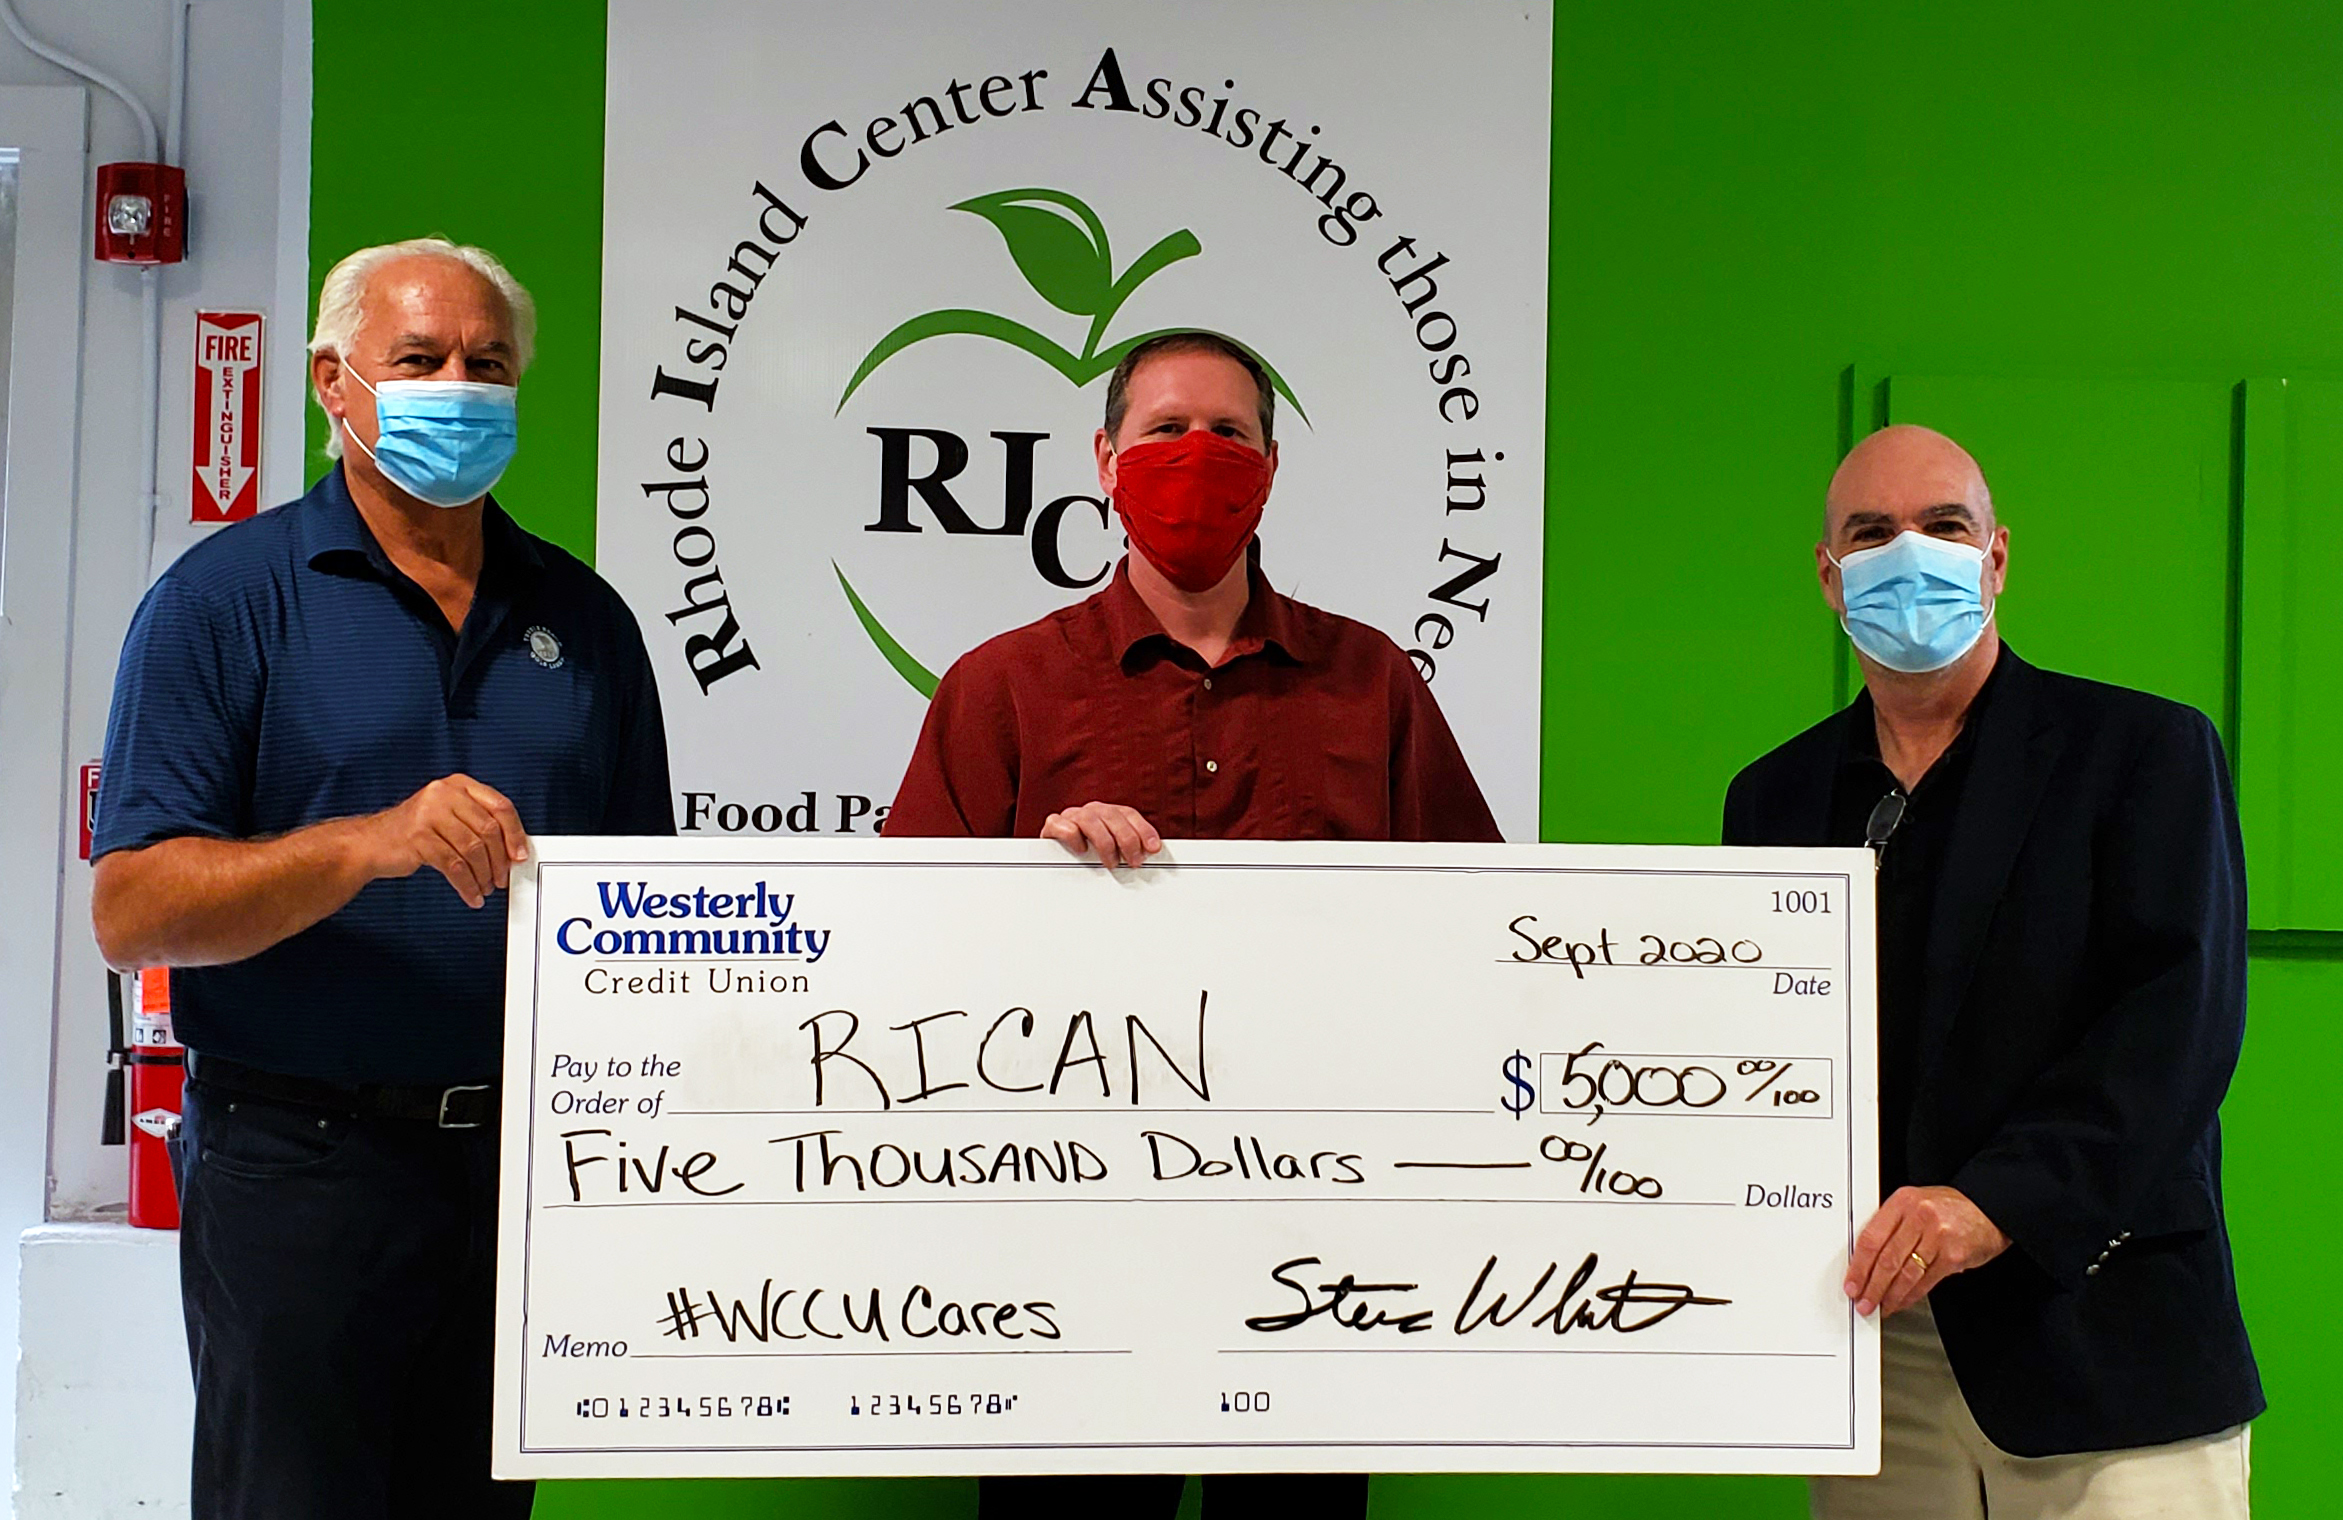 Westerly Community Credit Union donates $5,000 to Rhode Island Center Assisting those in Need (RICAN)